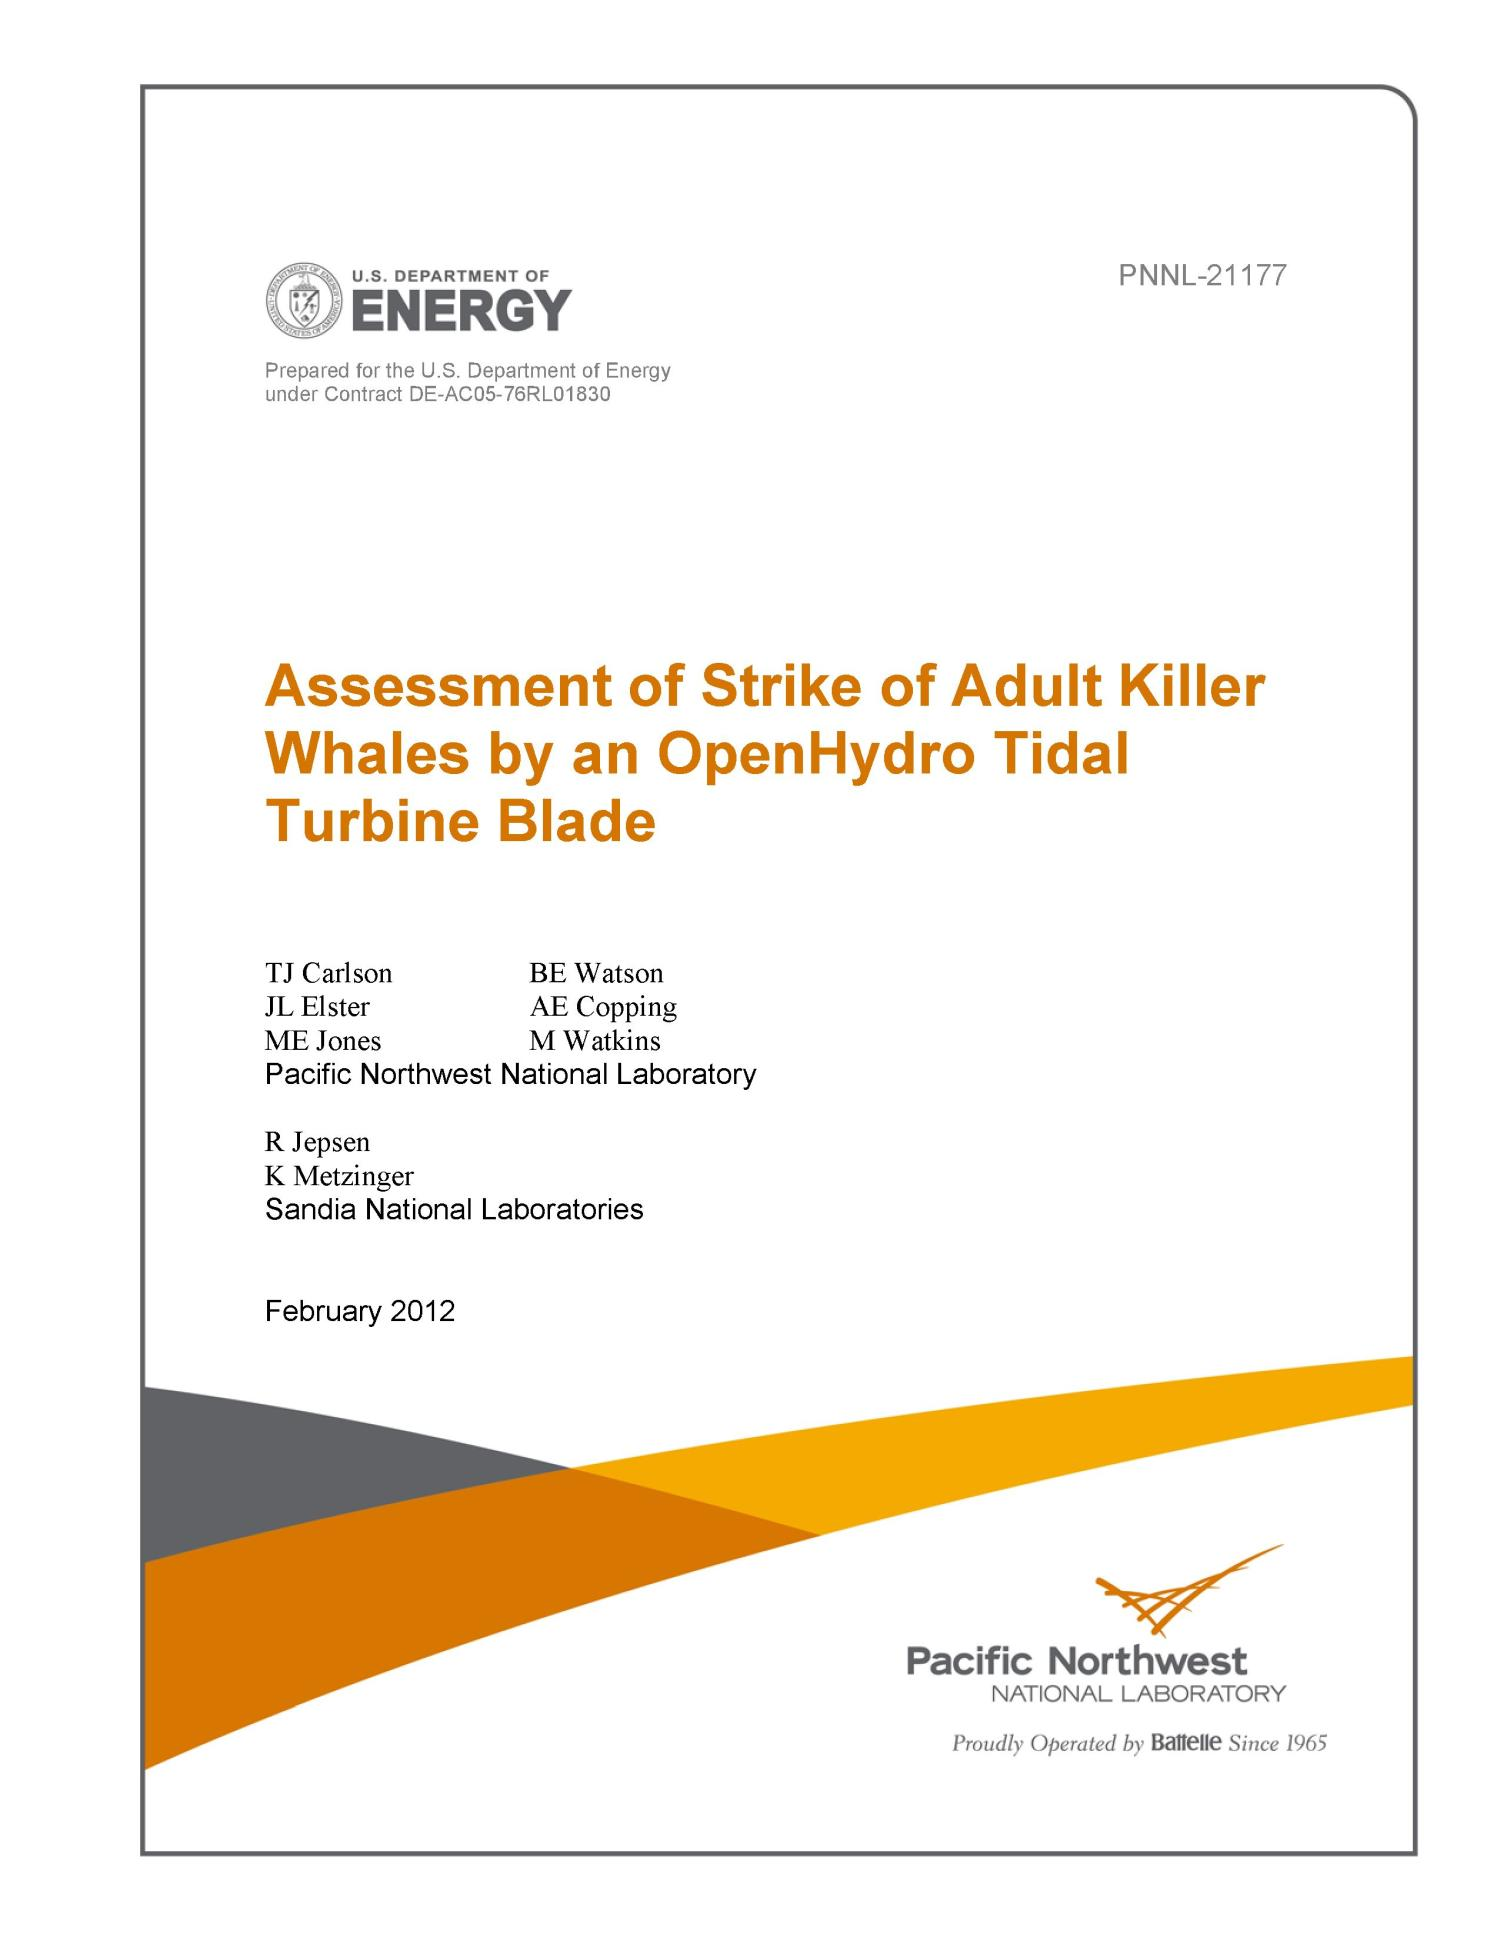 Assessment of Strike of Adult Killer Whales by an OpenHydro